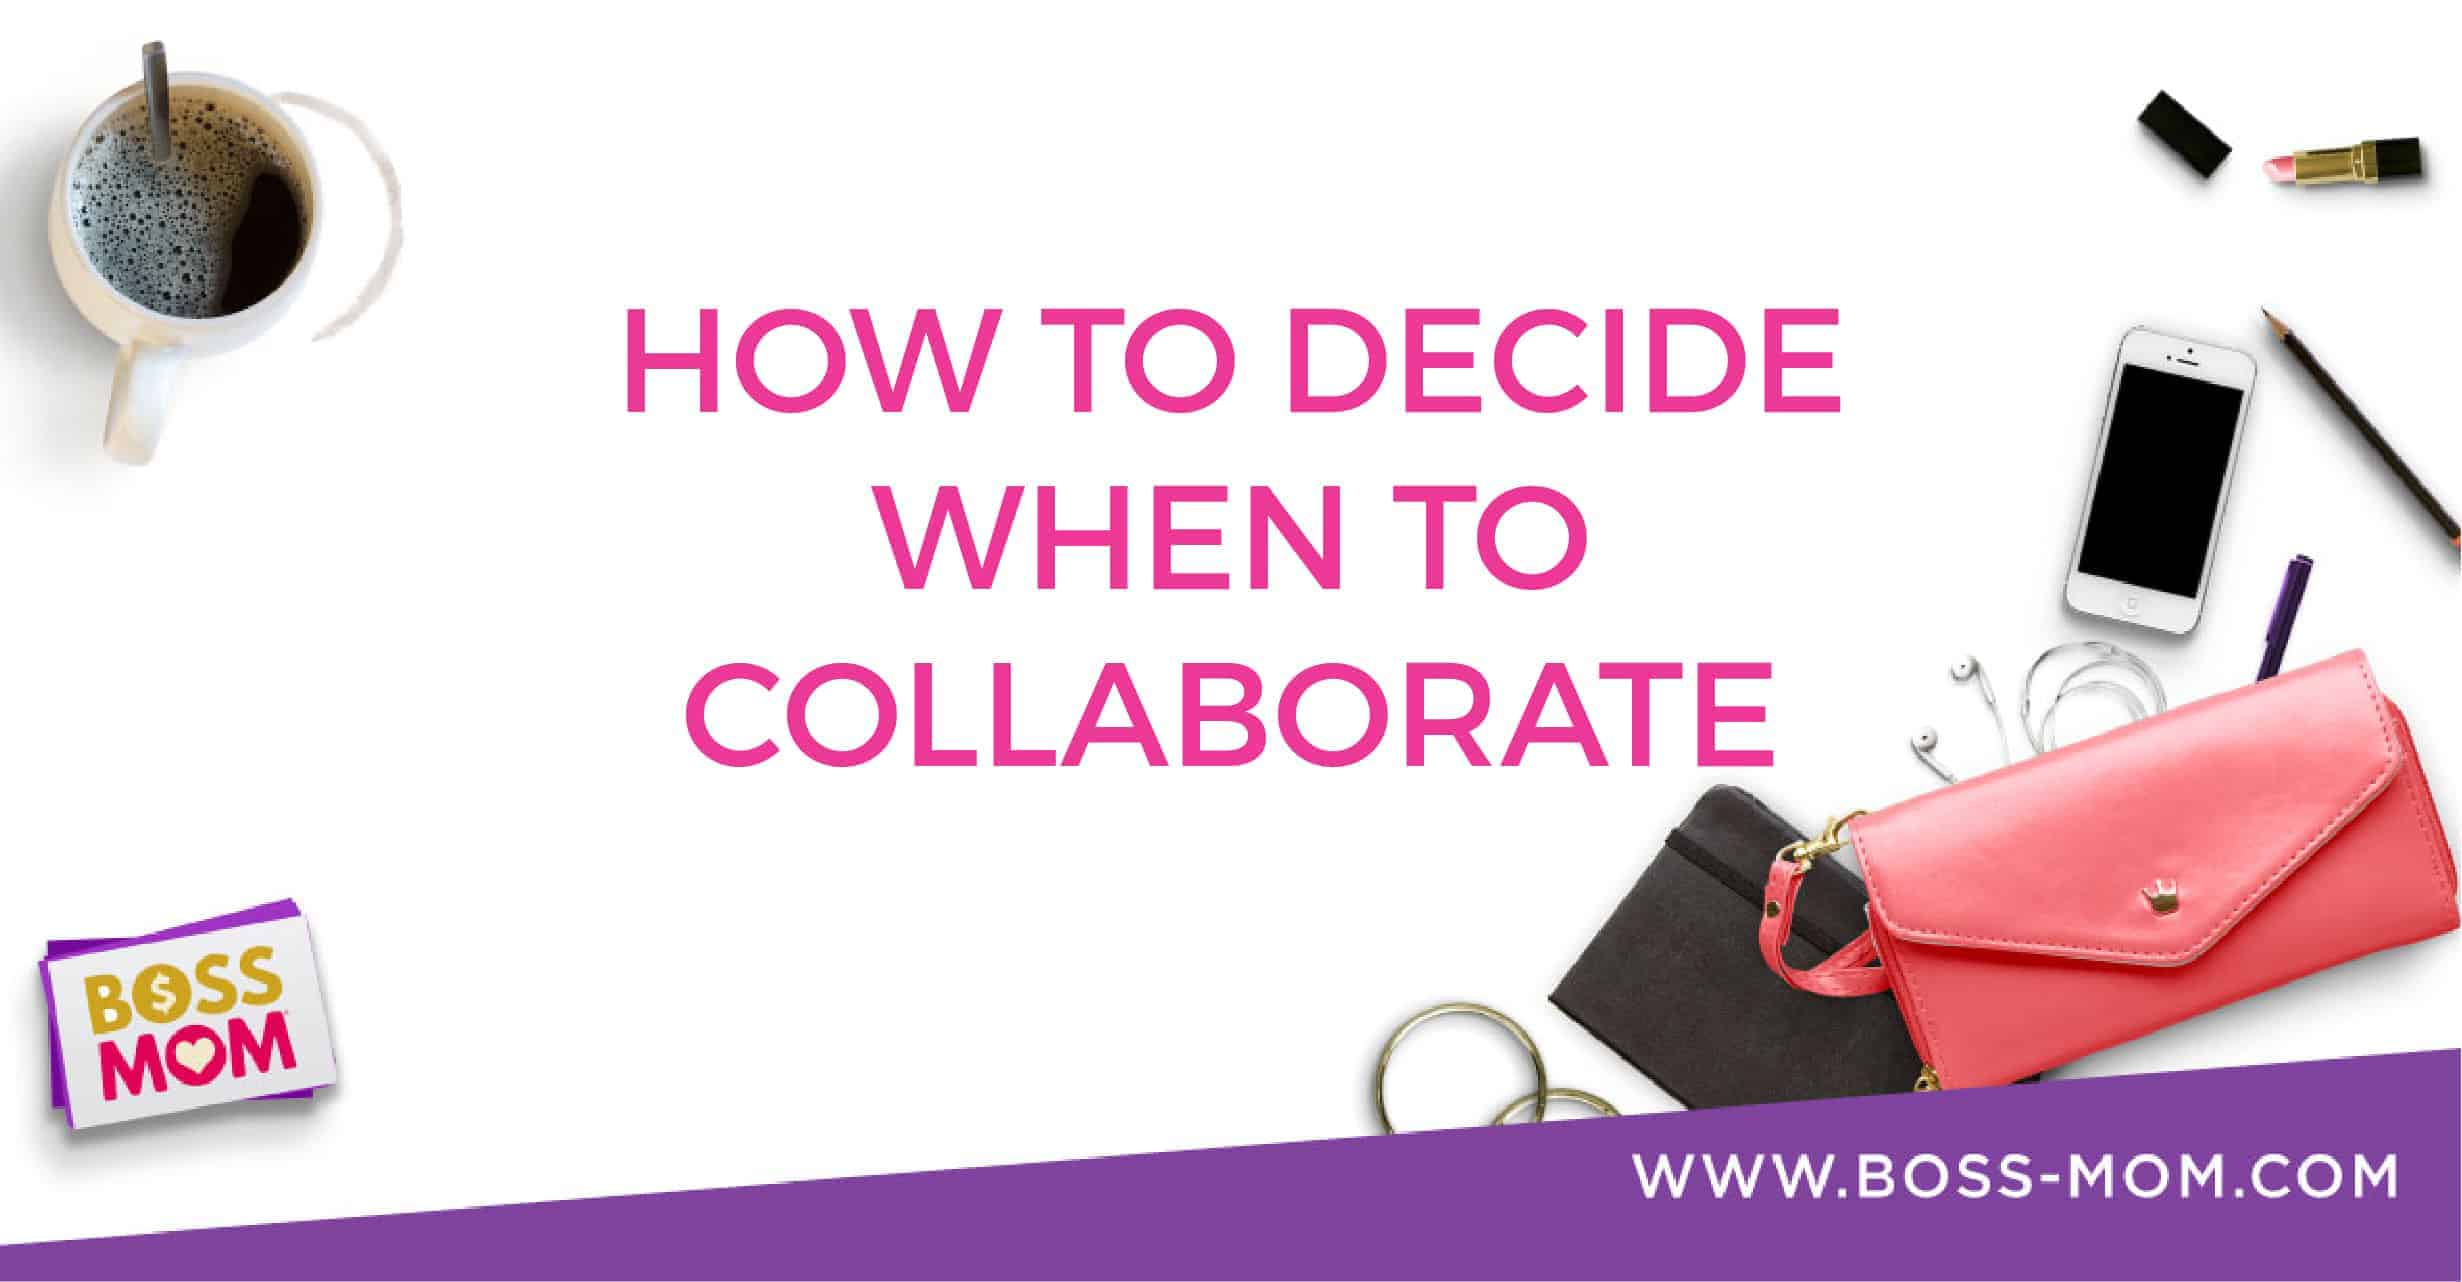 Episode 239: How to Decide When to Collaborate with Dana & NJ